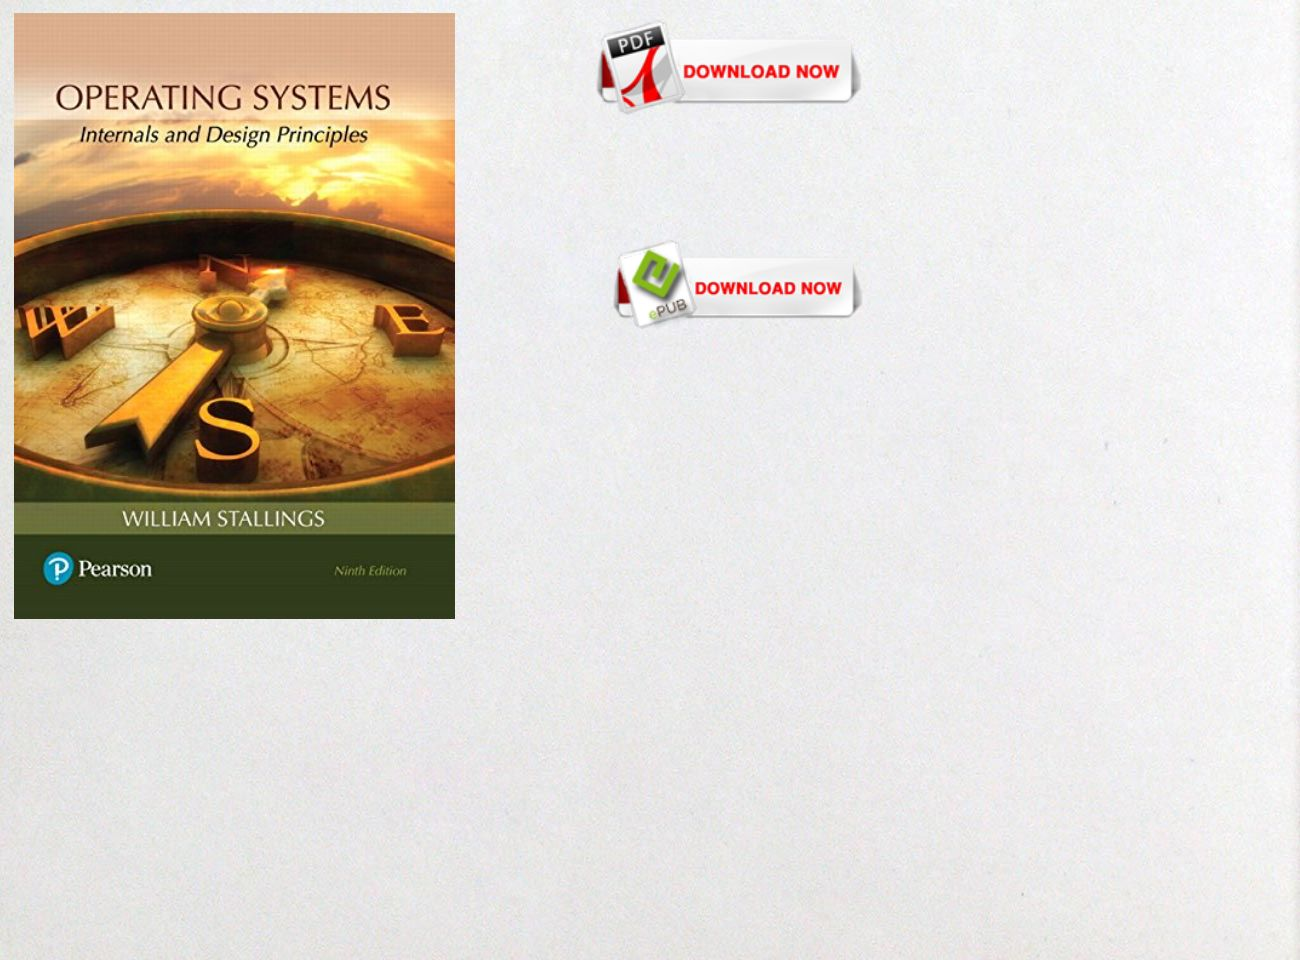 Operating System William Stallings 8th Edition Pdf Free Download